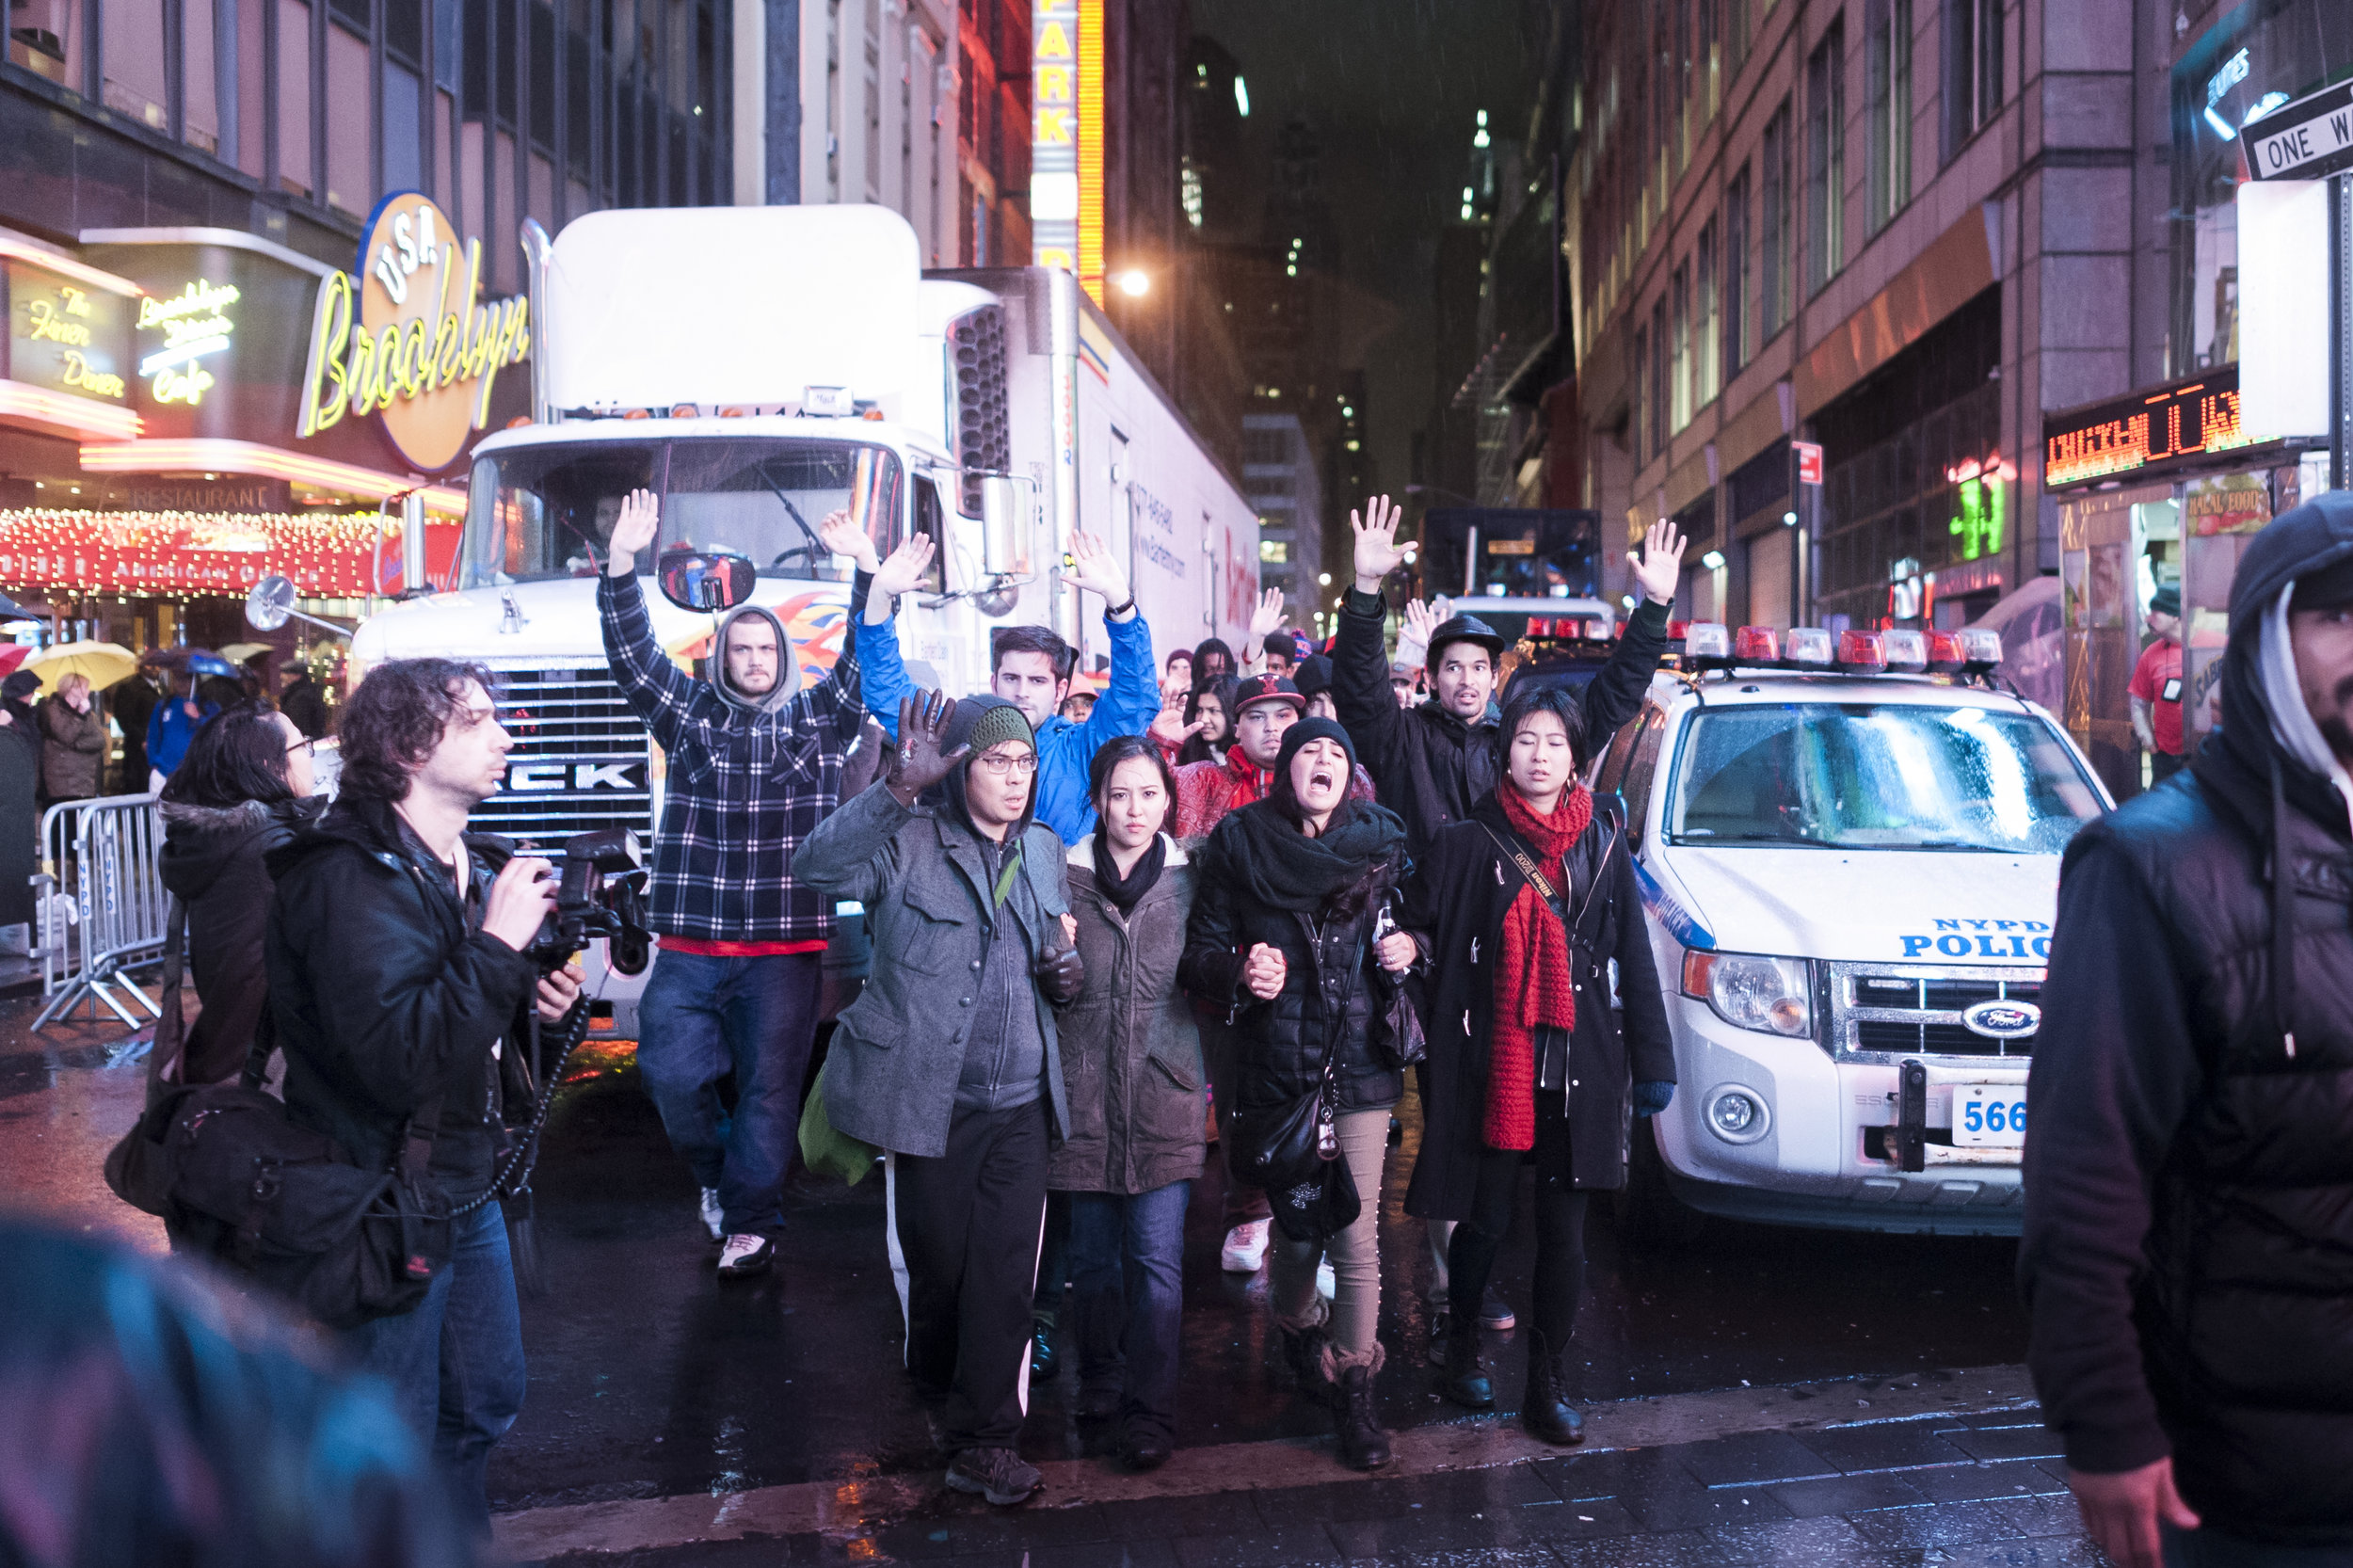 Demonstrators block traffic in Times Square on December 6, 2014. Weeks of protest followed a Staten Island grand jury's decision on December 3rd 2014 not to indict Officer Daniel Pantaleo in the killing of Eric Garner.